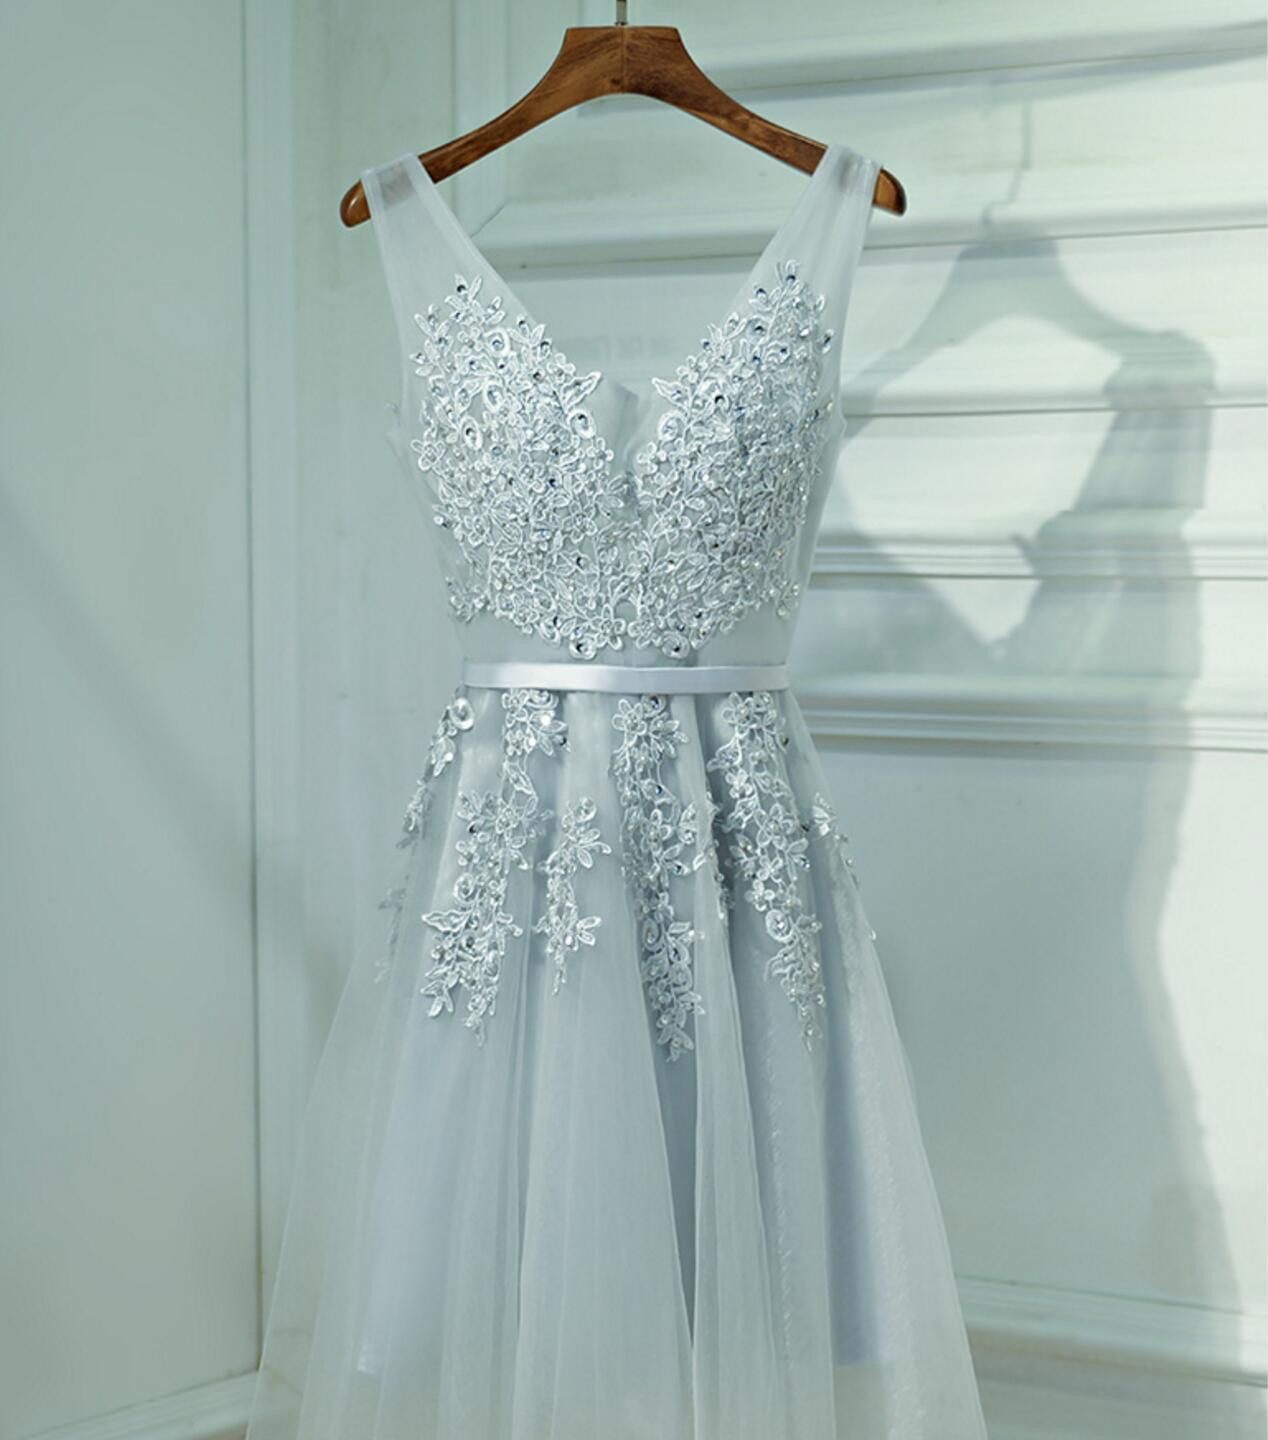 Cute Gray Lace v Neckline Short Homecoming Prom Dresses, Affordable ...